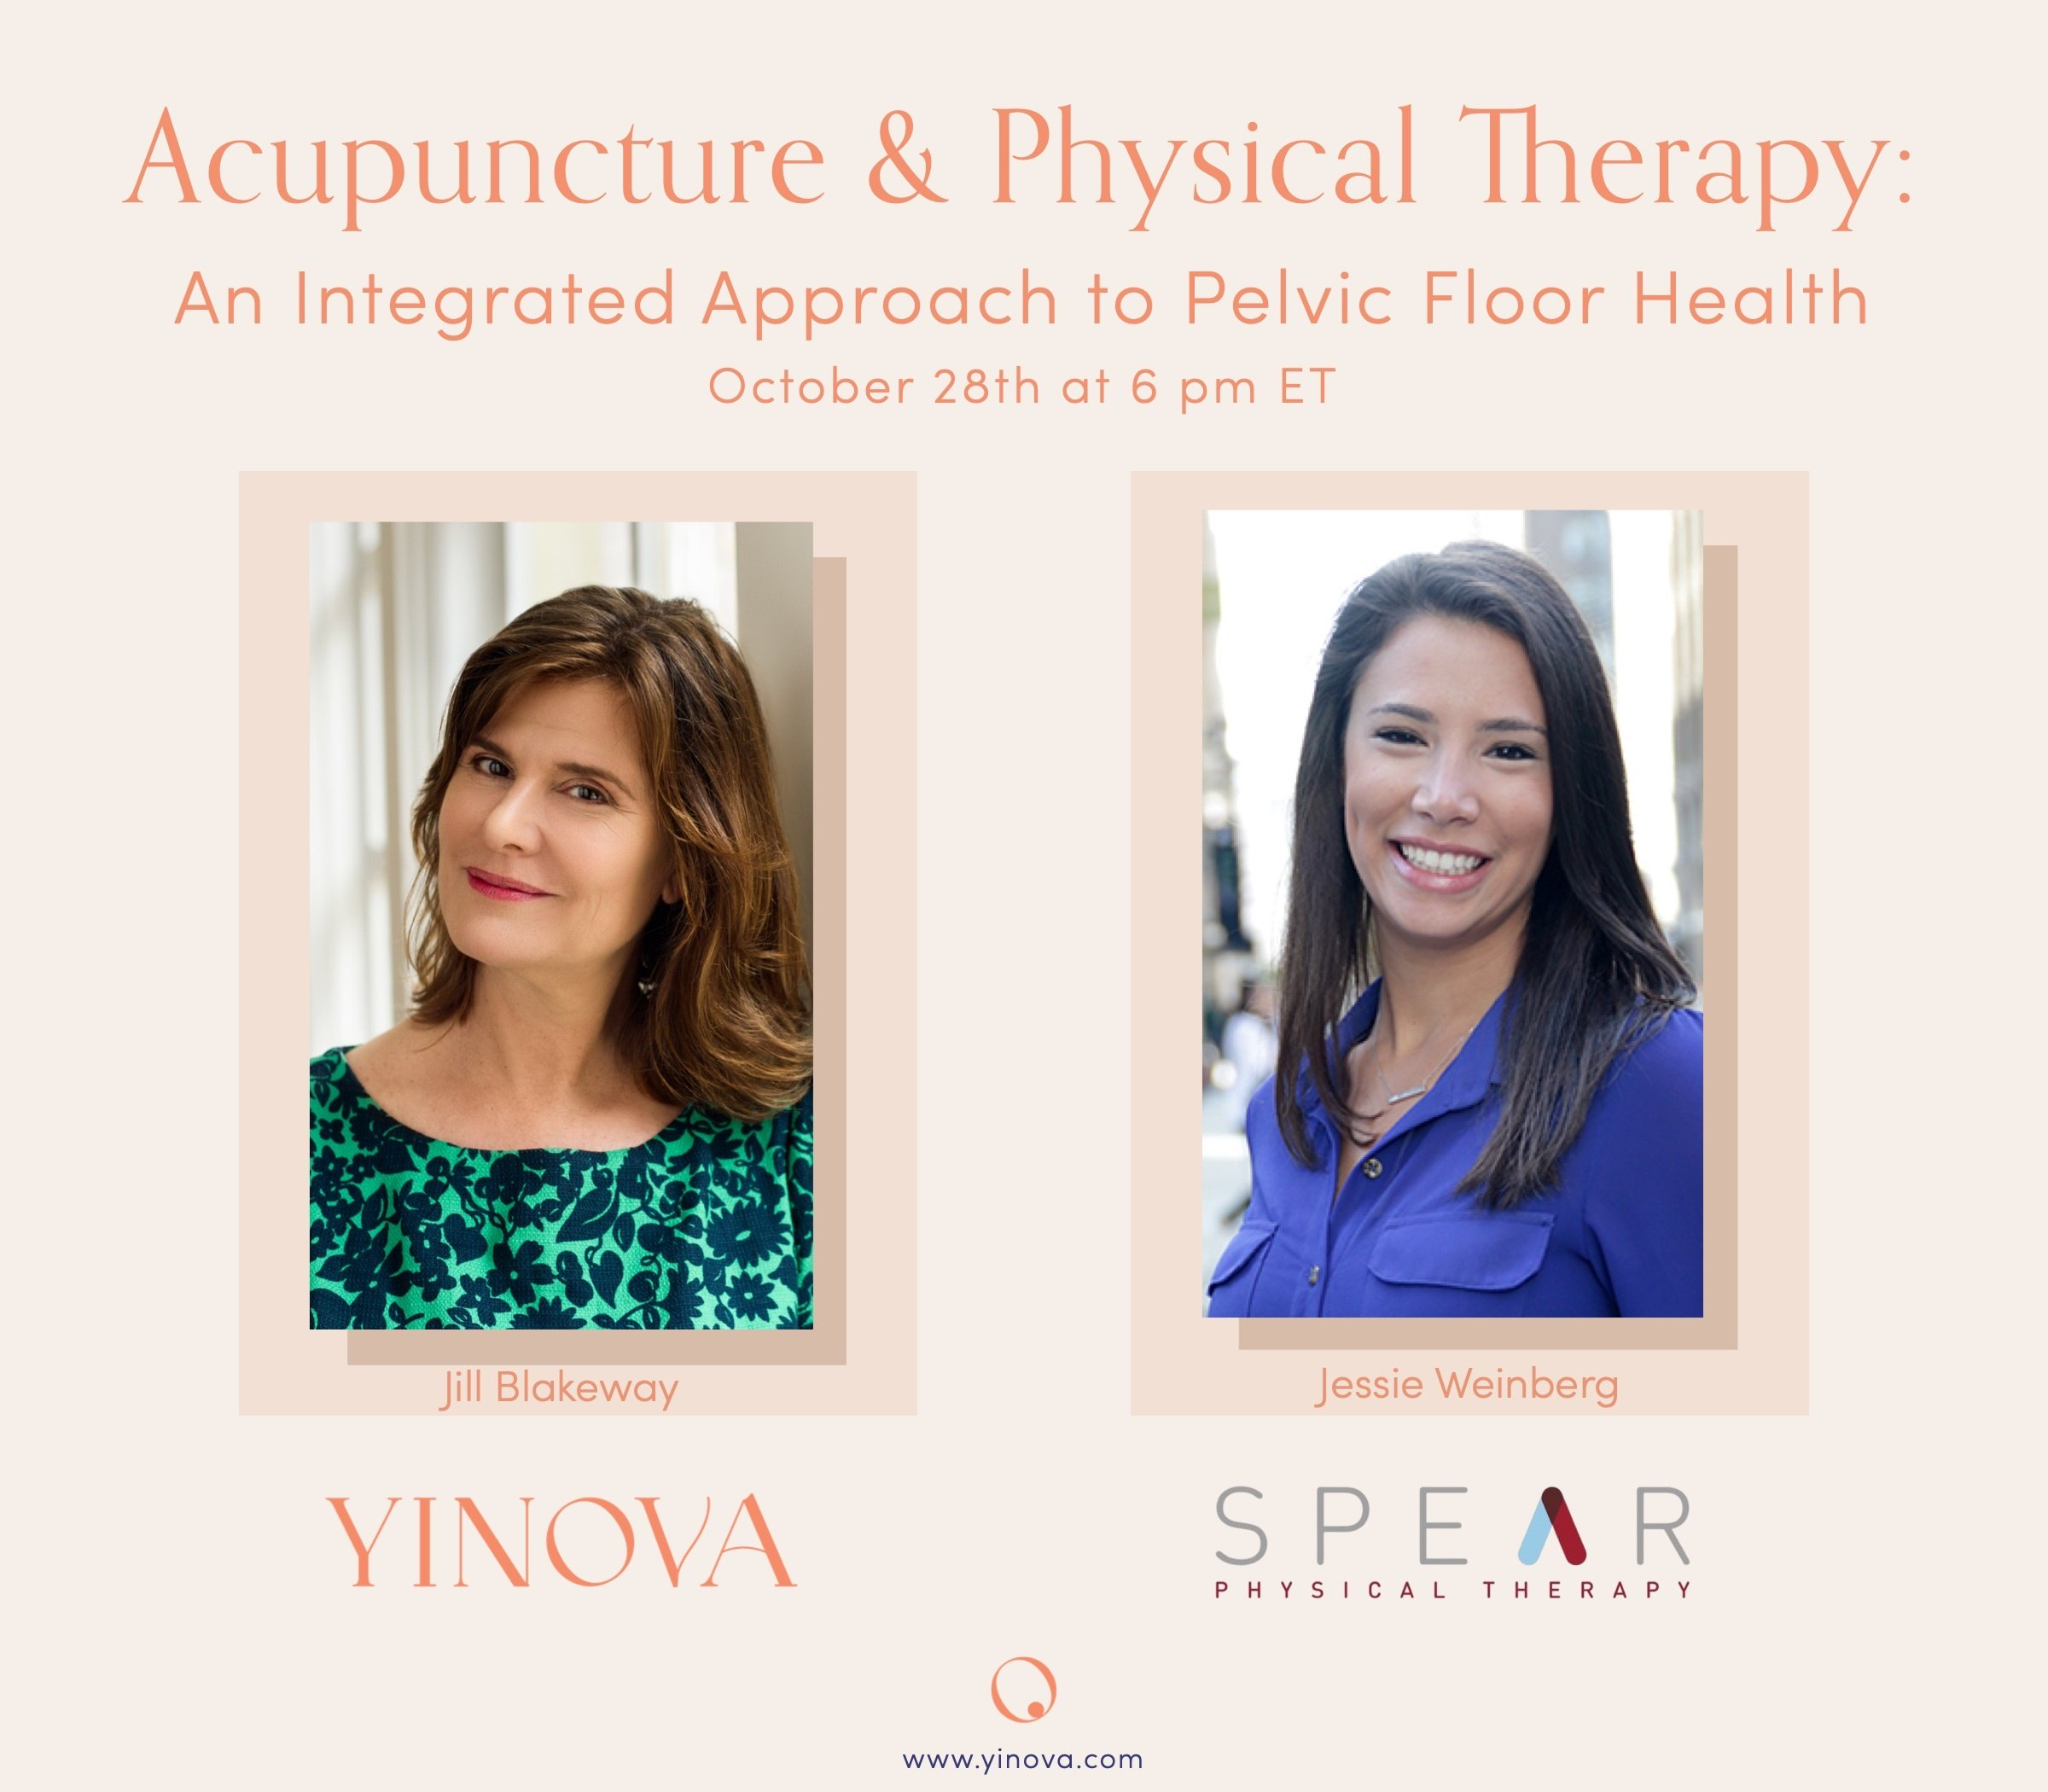 Yinova and Spear Physical Therapy Event Graphic